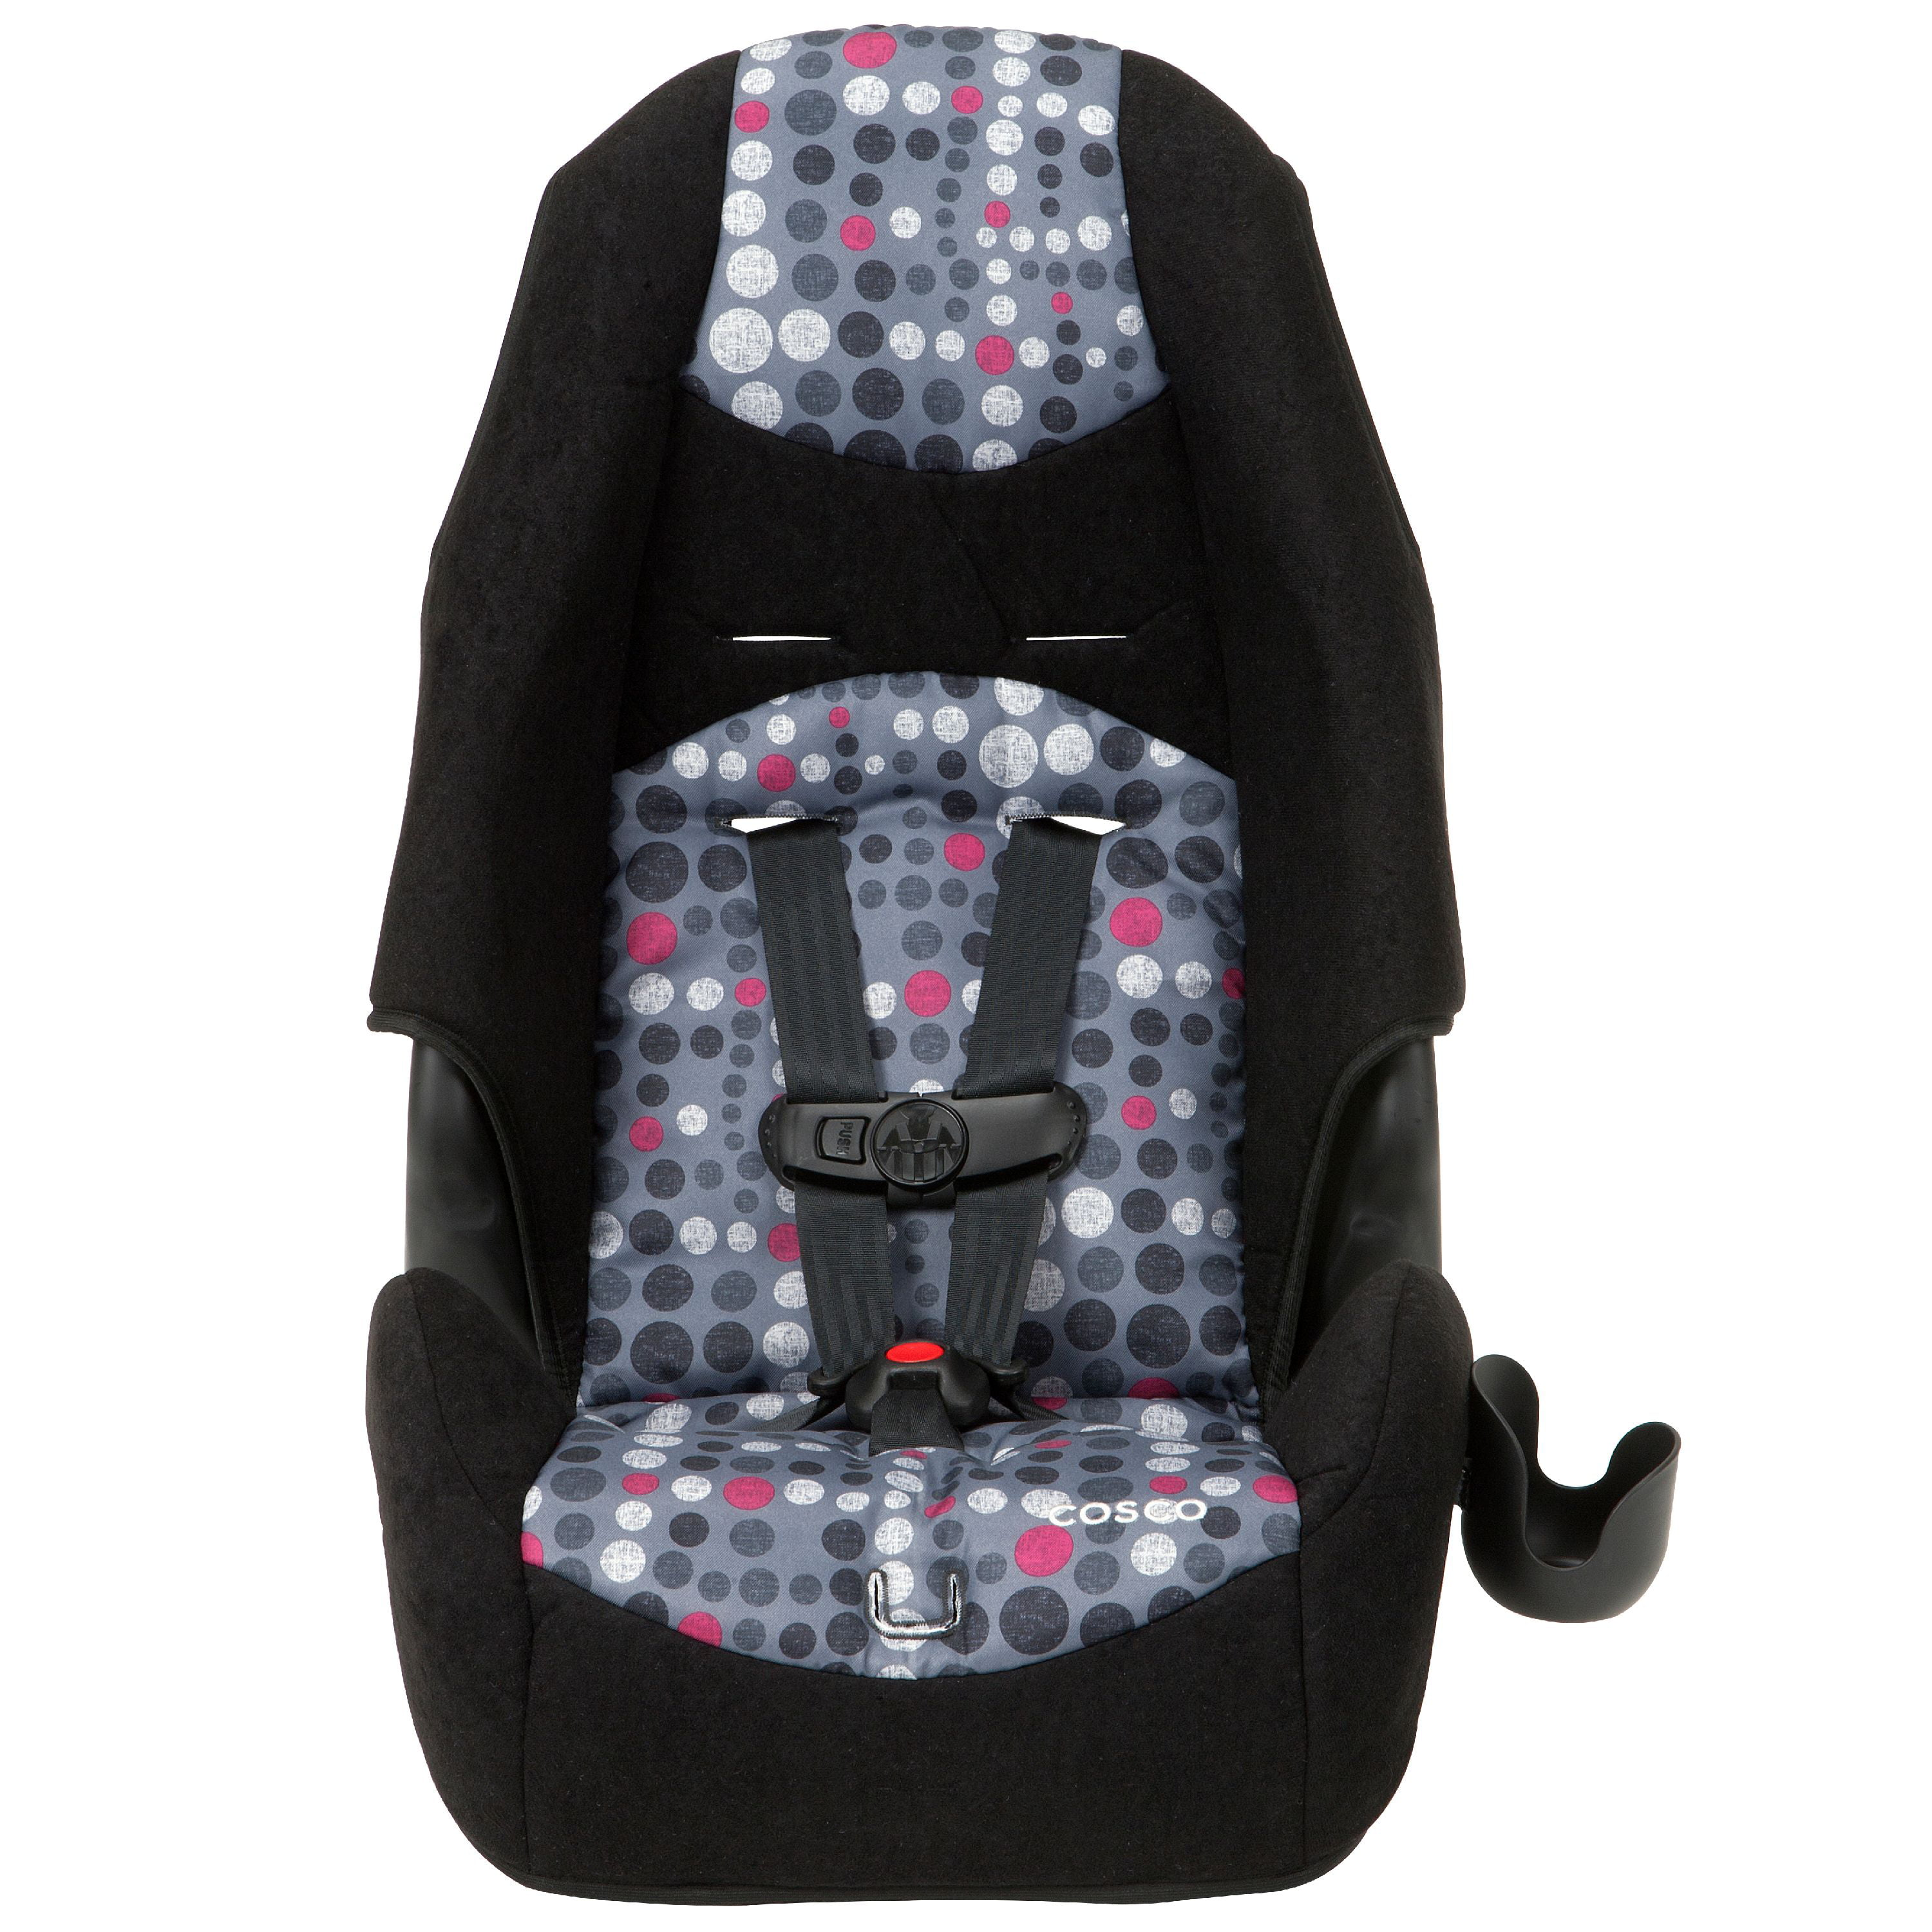 Disney Nightmare Before Christmas Baby Infant Car Seat Cover